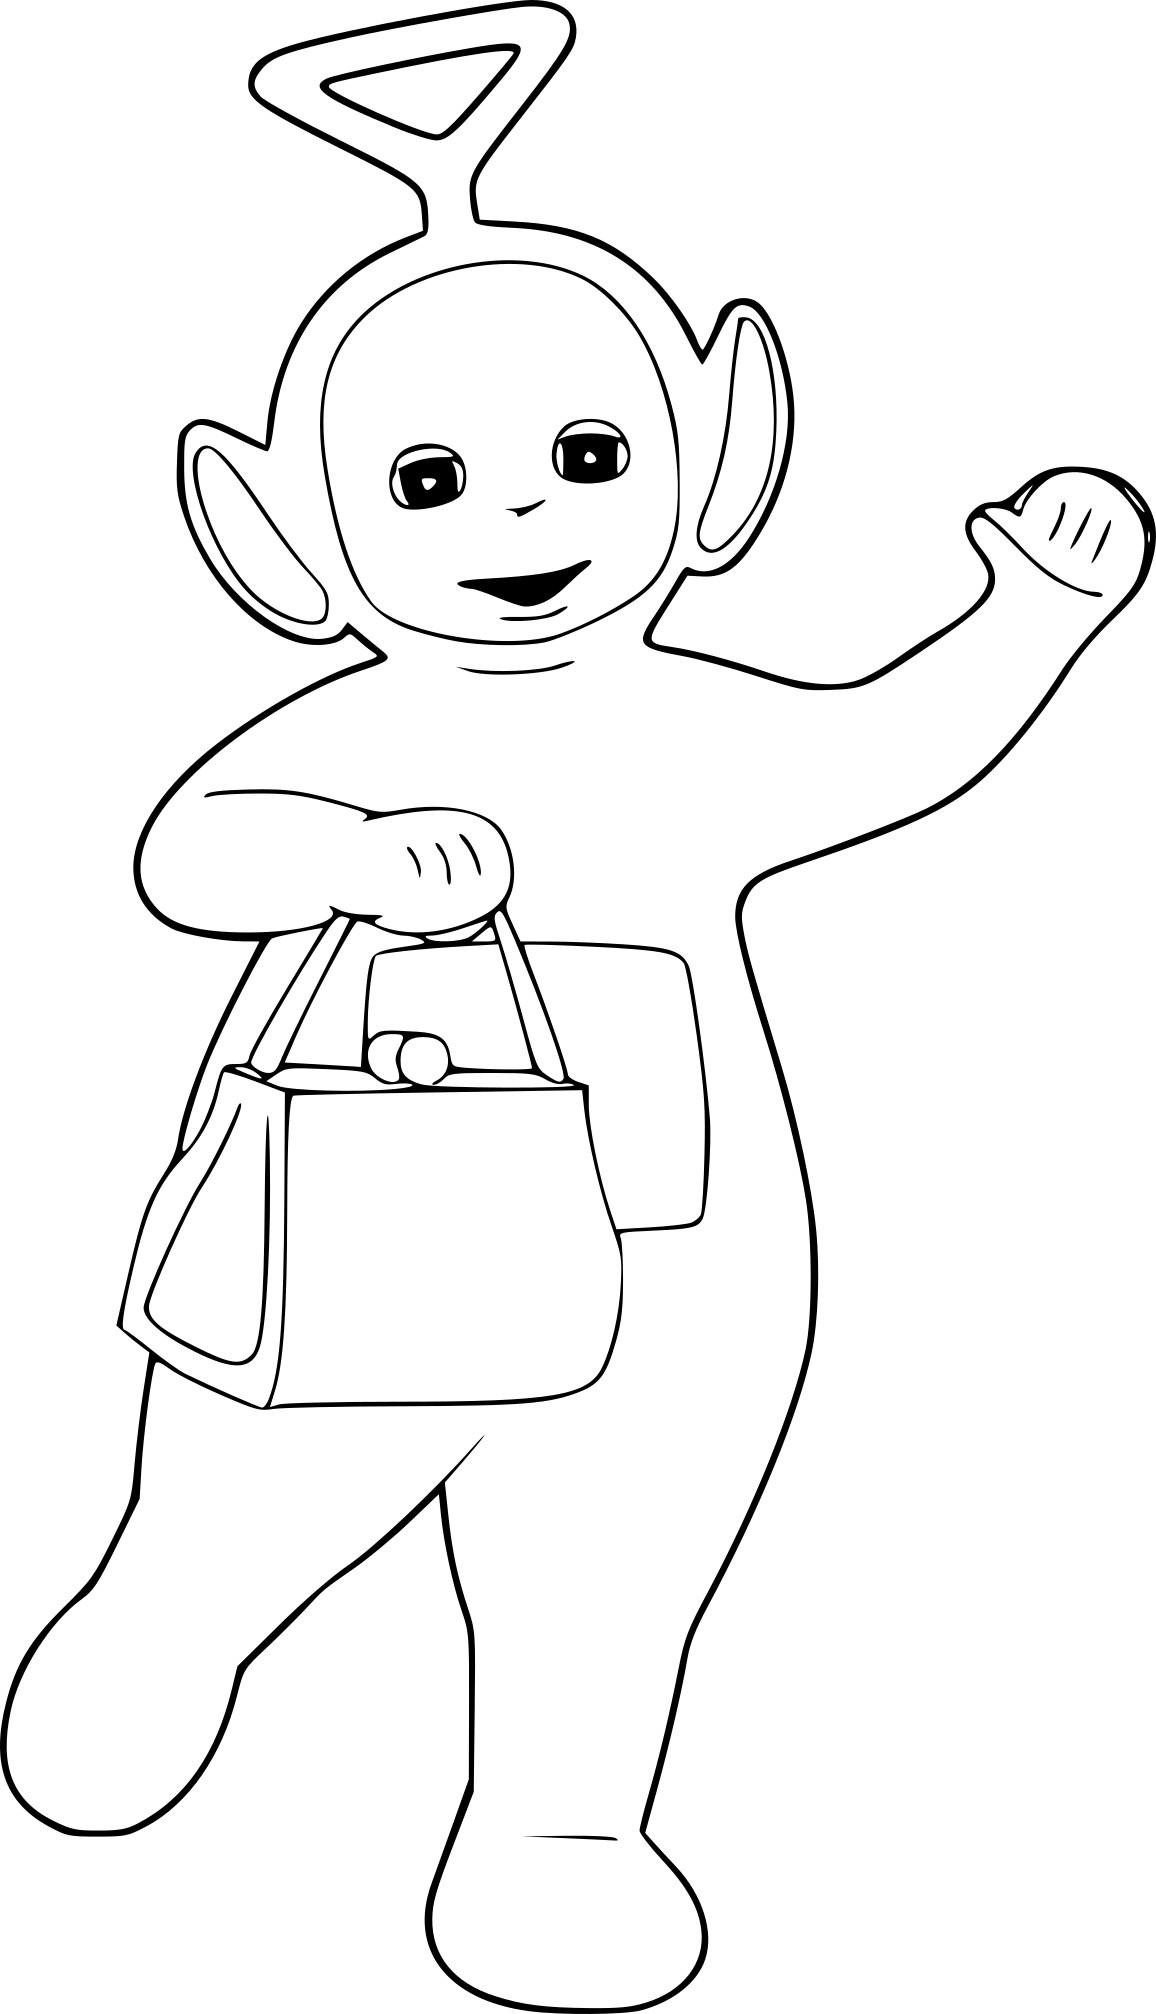 teletubbies tinky winky coloring pages | Coloriage Teletubbies Tinky Winky à imprimer